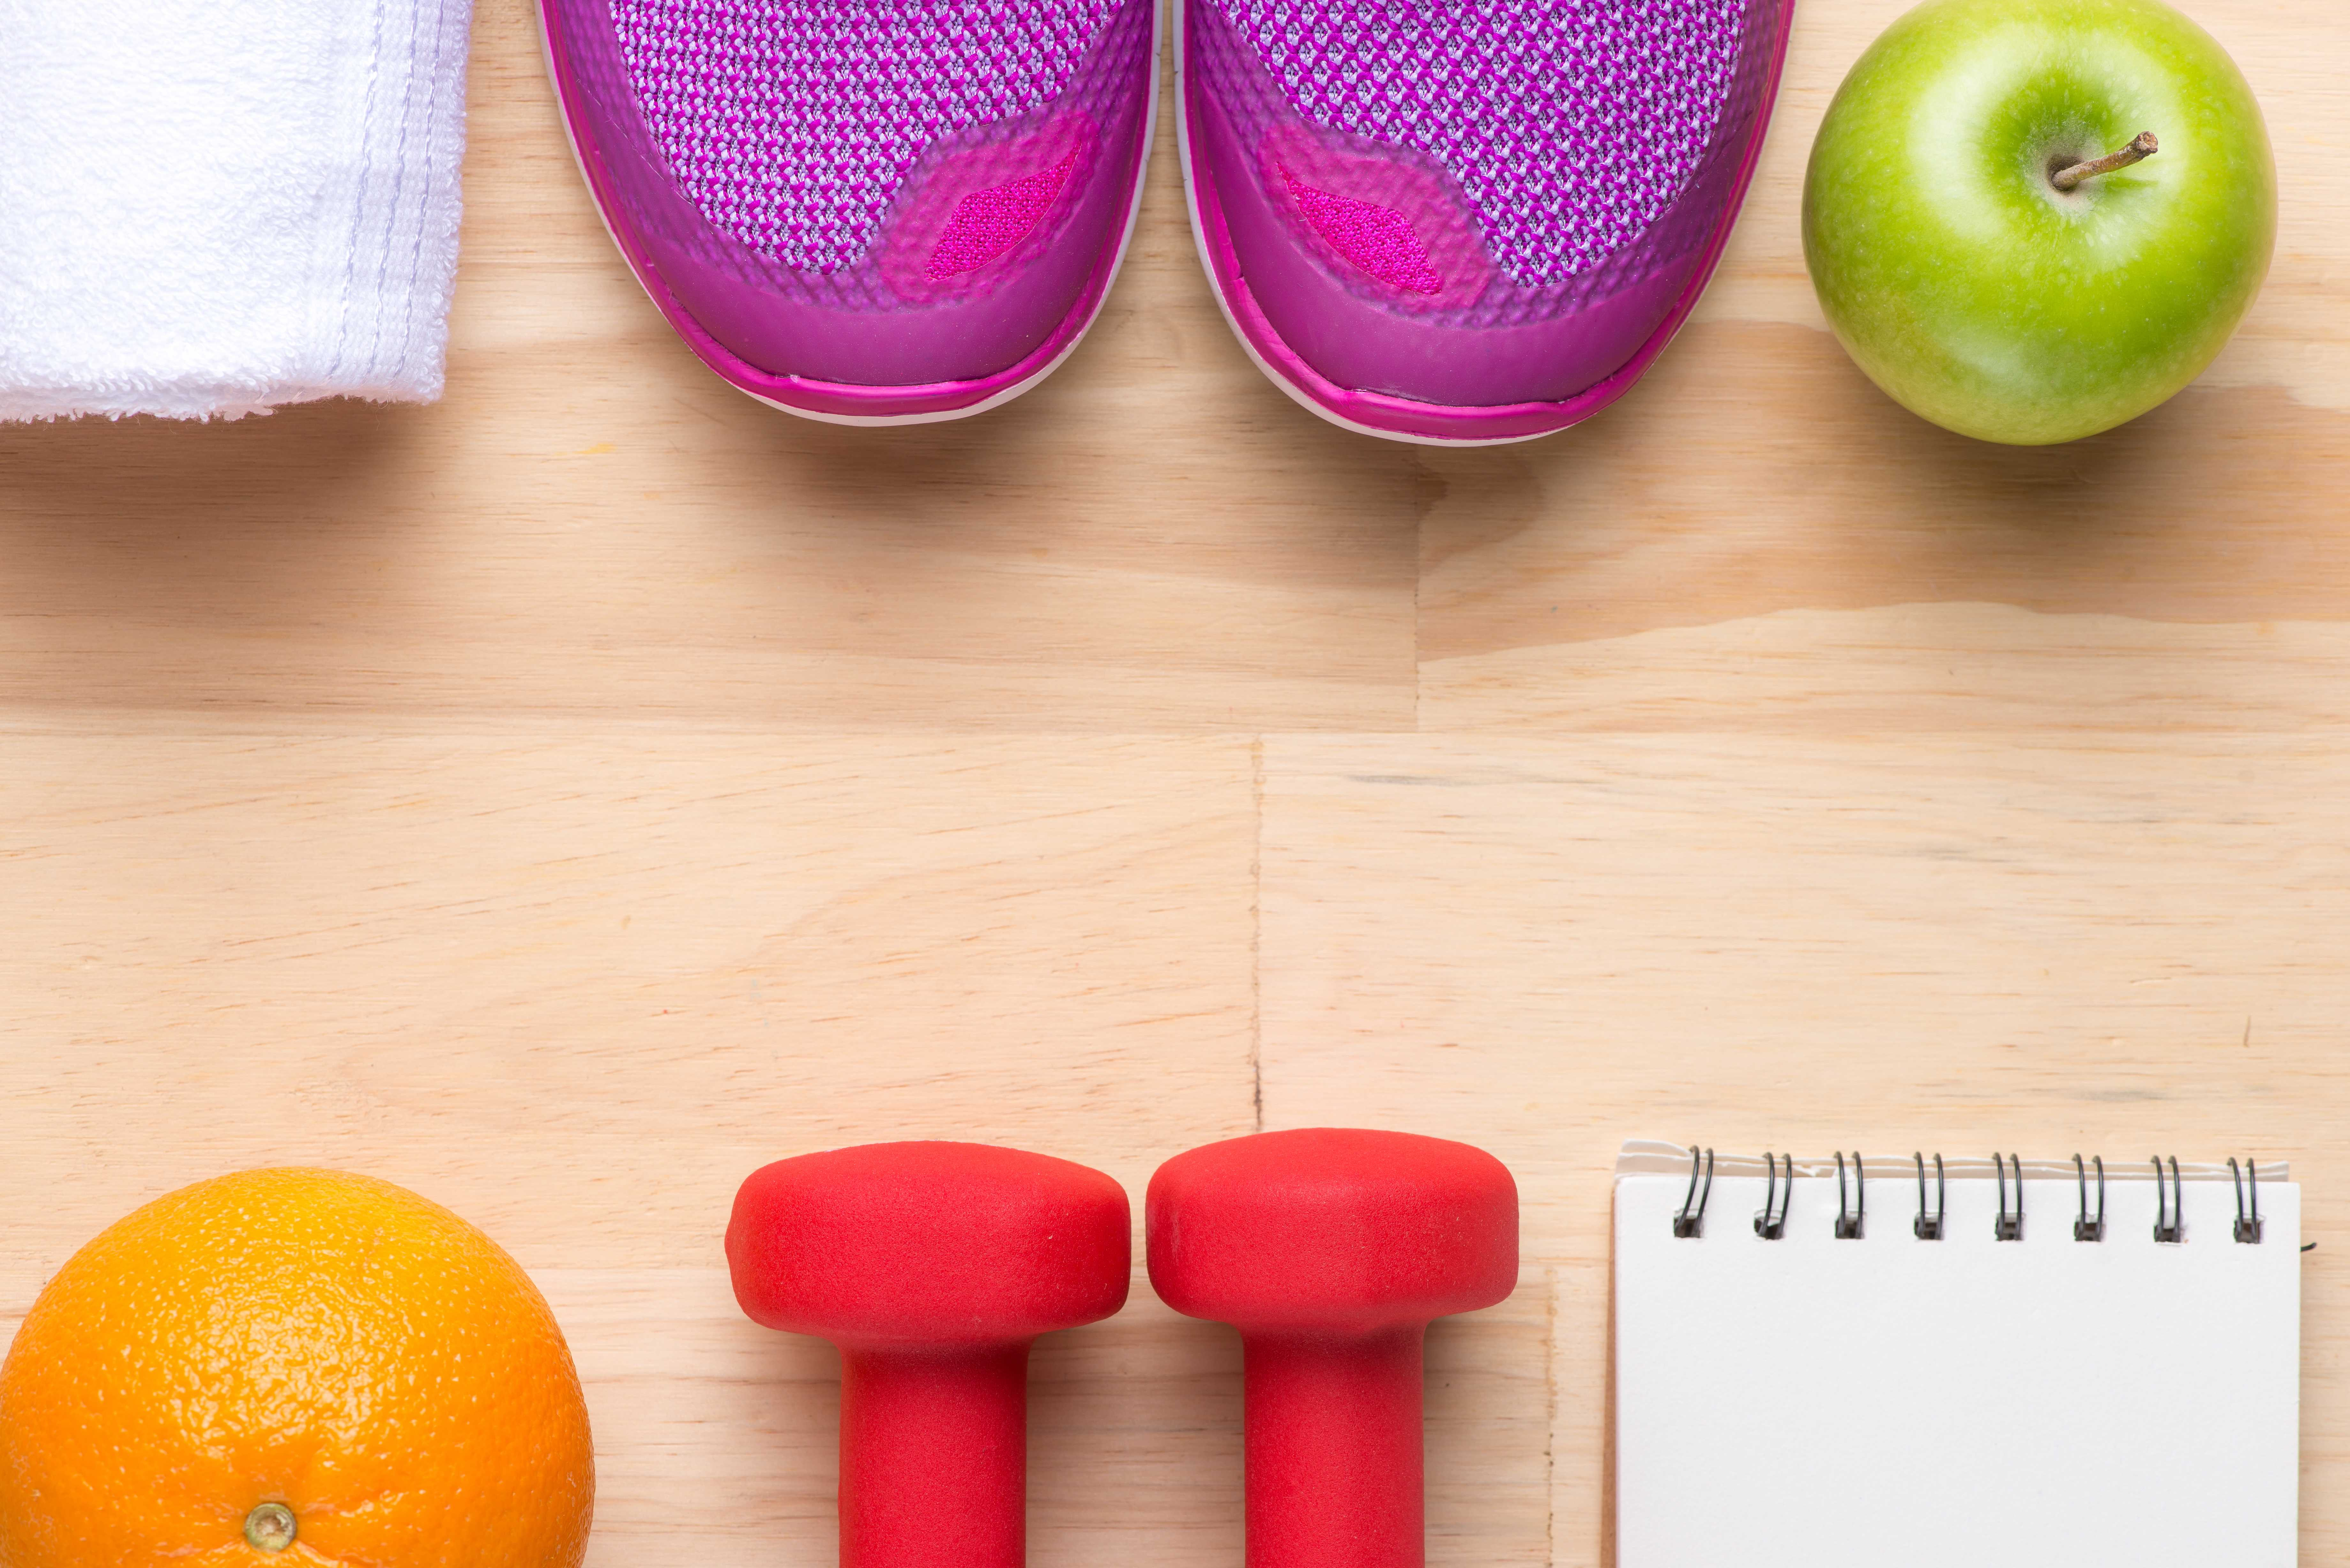 Benefit experts welcome clarity of EEOC wellness rules